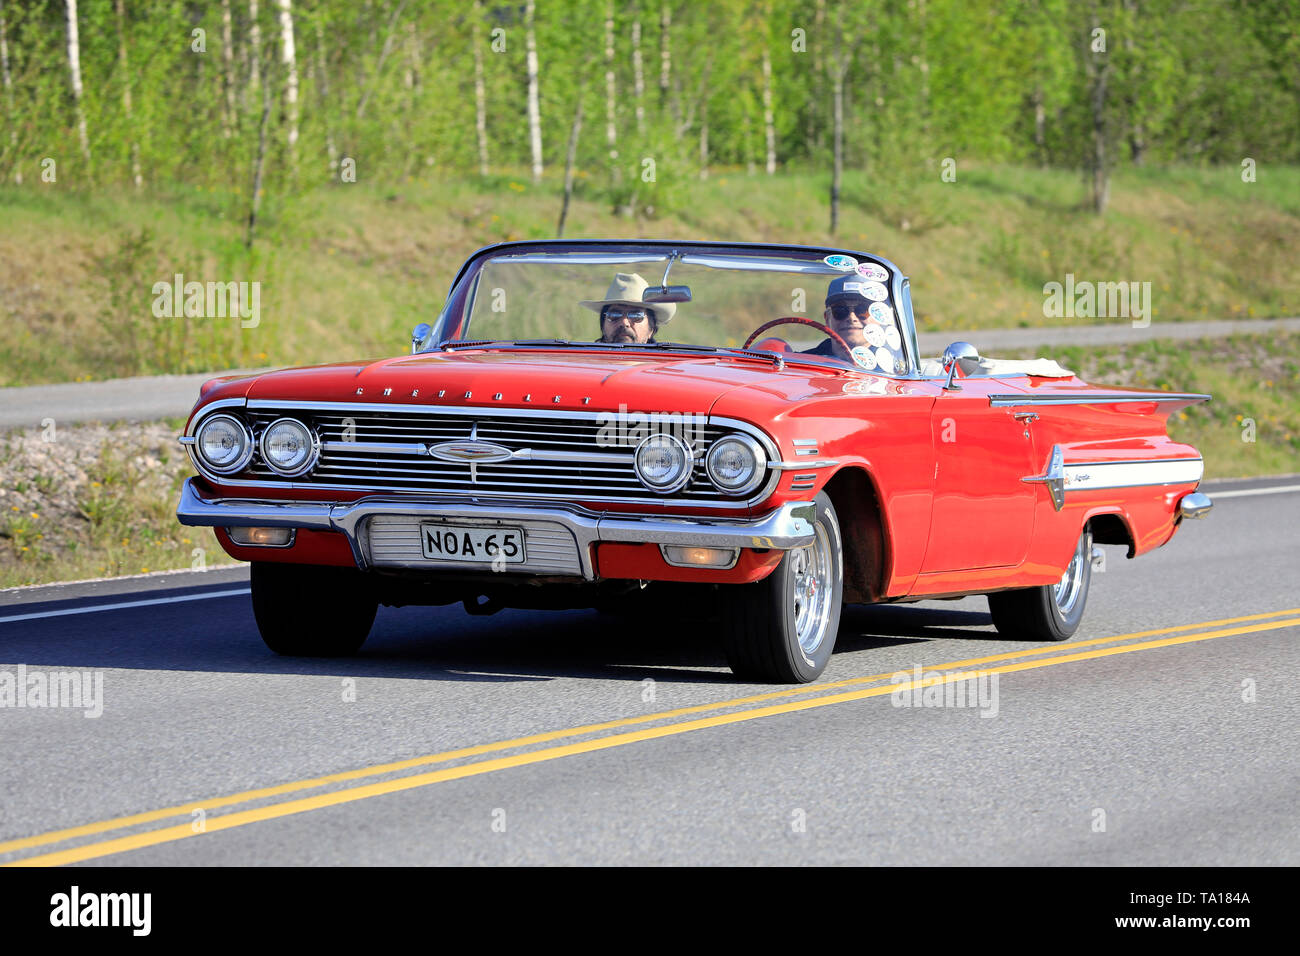 Salo, Finland. May 18, 2019. Classic 1960s red Chevrolet Impala Convertible on the road on Salon Maisema Cruising 2019. - Stock Image